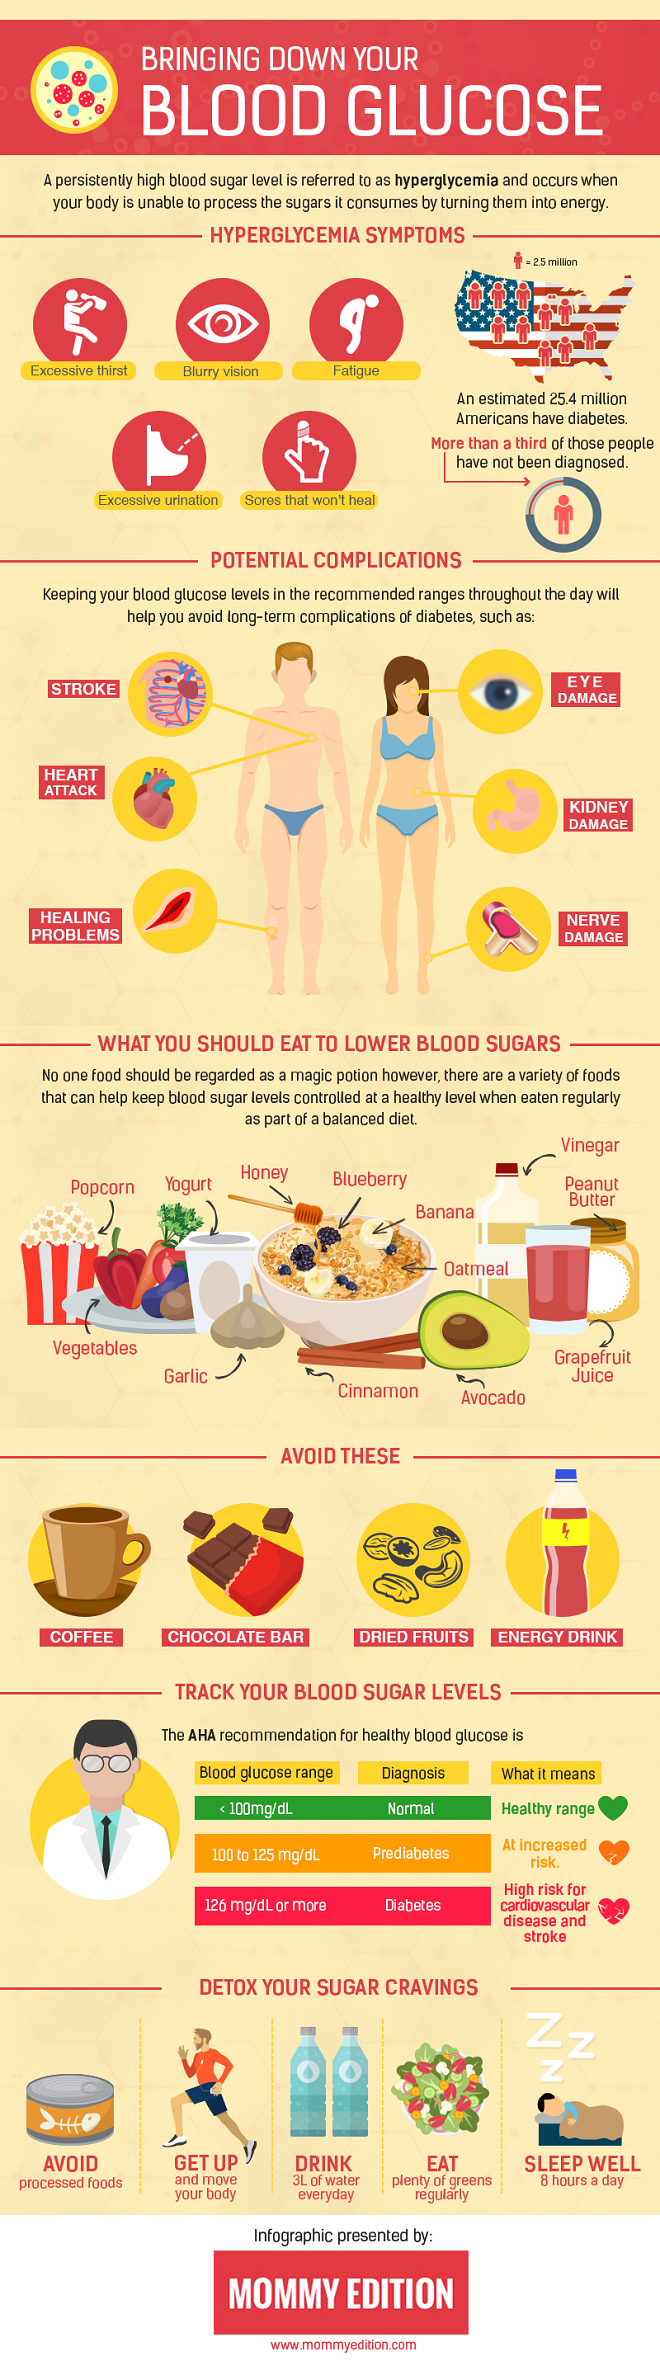 The Natural Way To Lower Your Diabetes Risk 20 picture